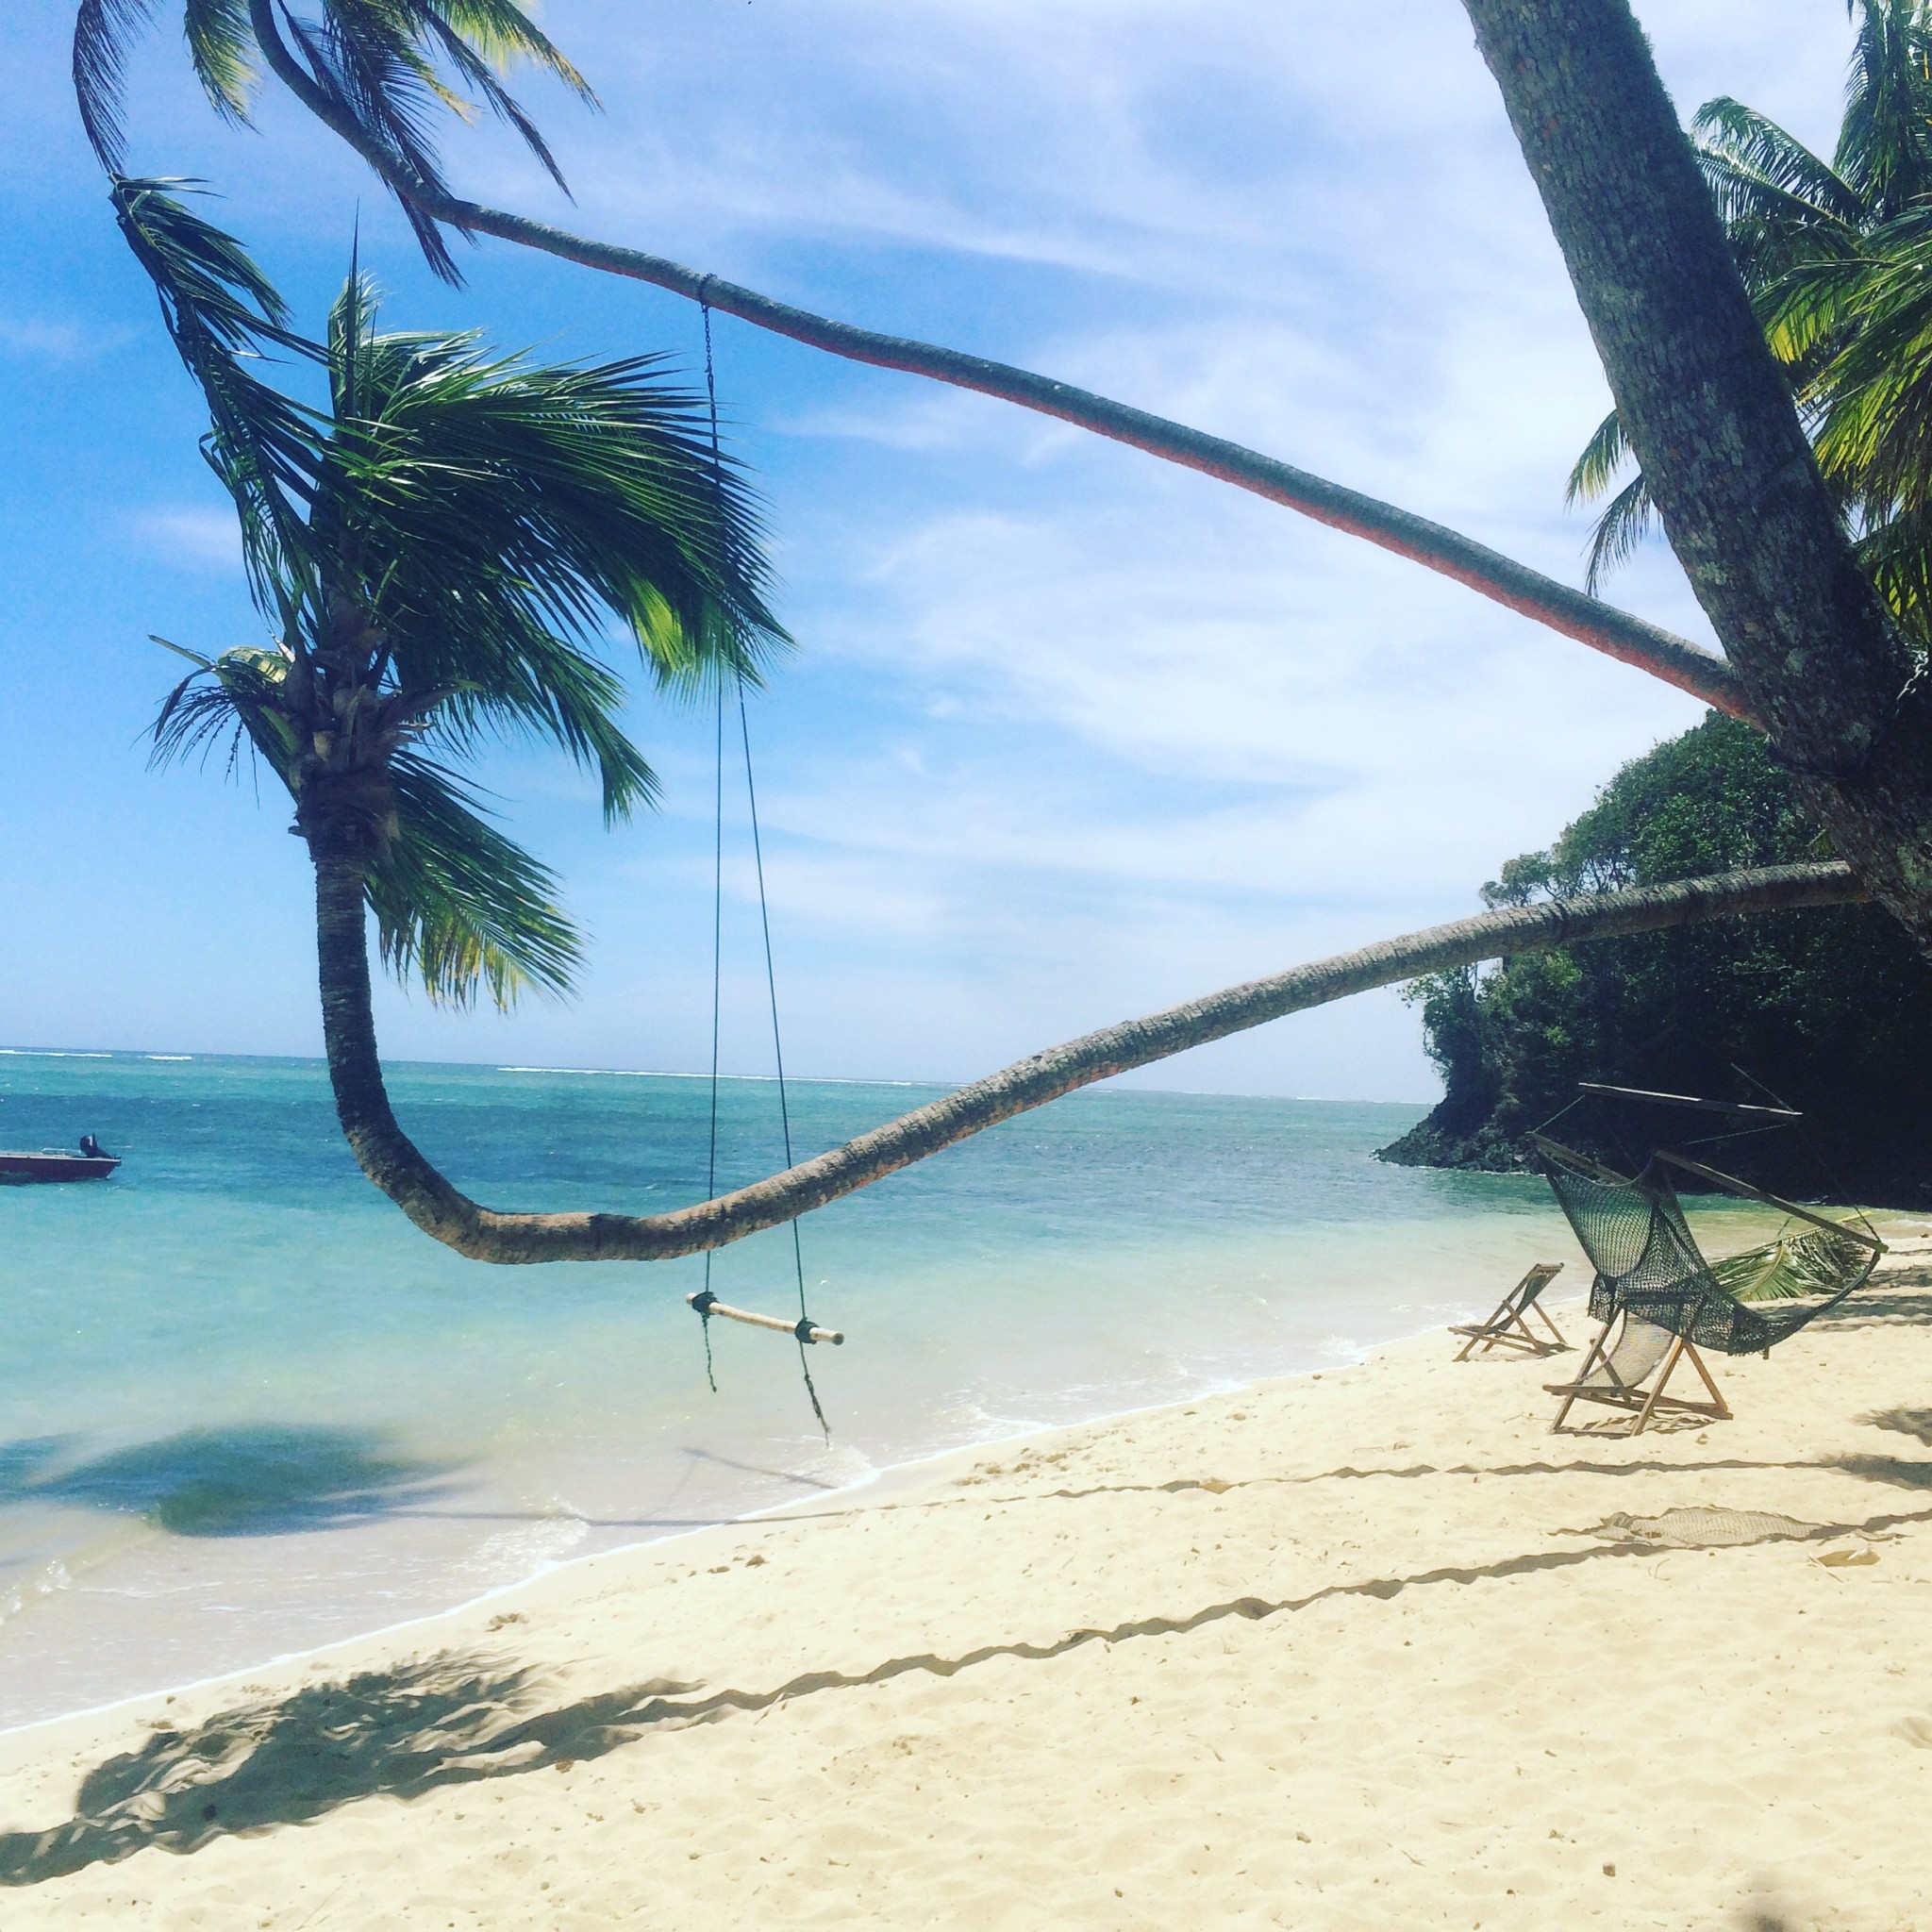 Fiji Beaches: A Tropical And Isolated Escape